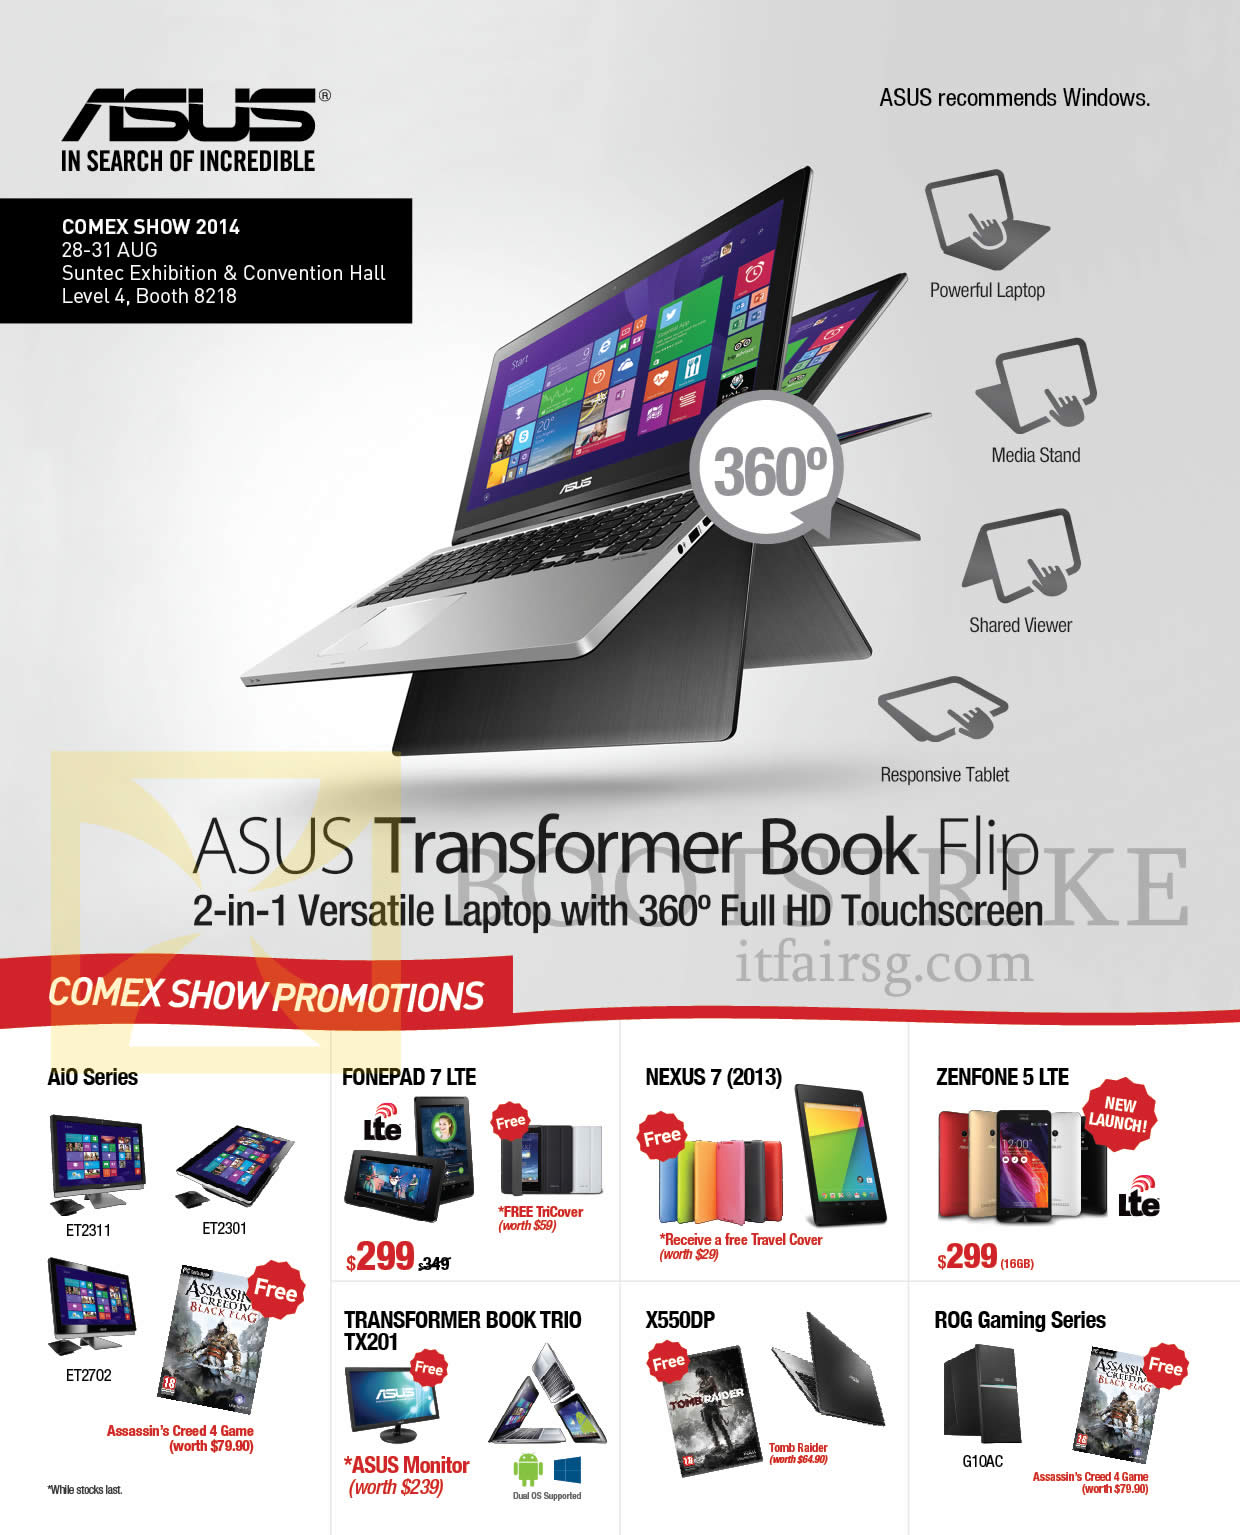 COMEX 2014 price list image brochure of ASUS Comex Show Promotions AIO Series, Fonepad 7, Transformer Book, Nexus 7, Zenfone 5, ROG Gaming Series